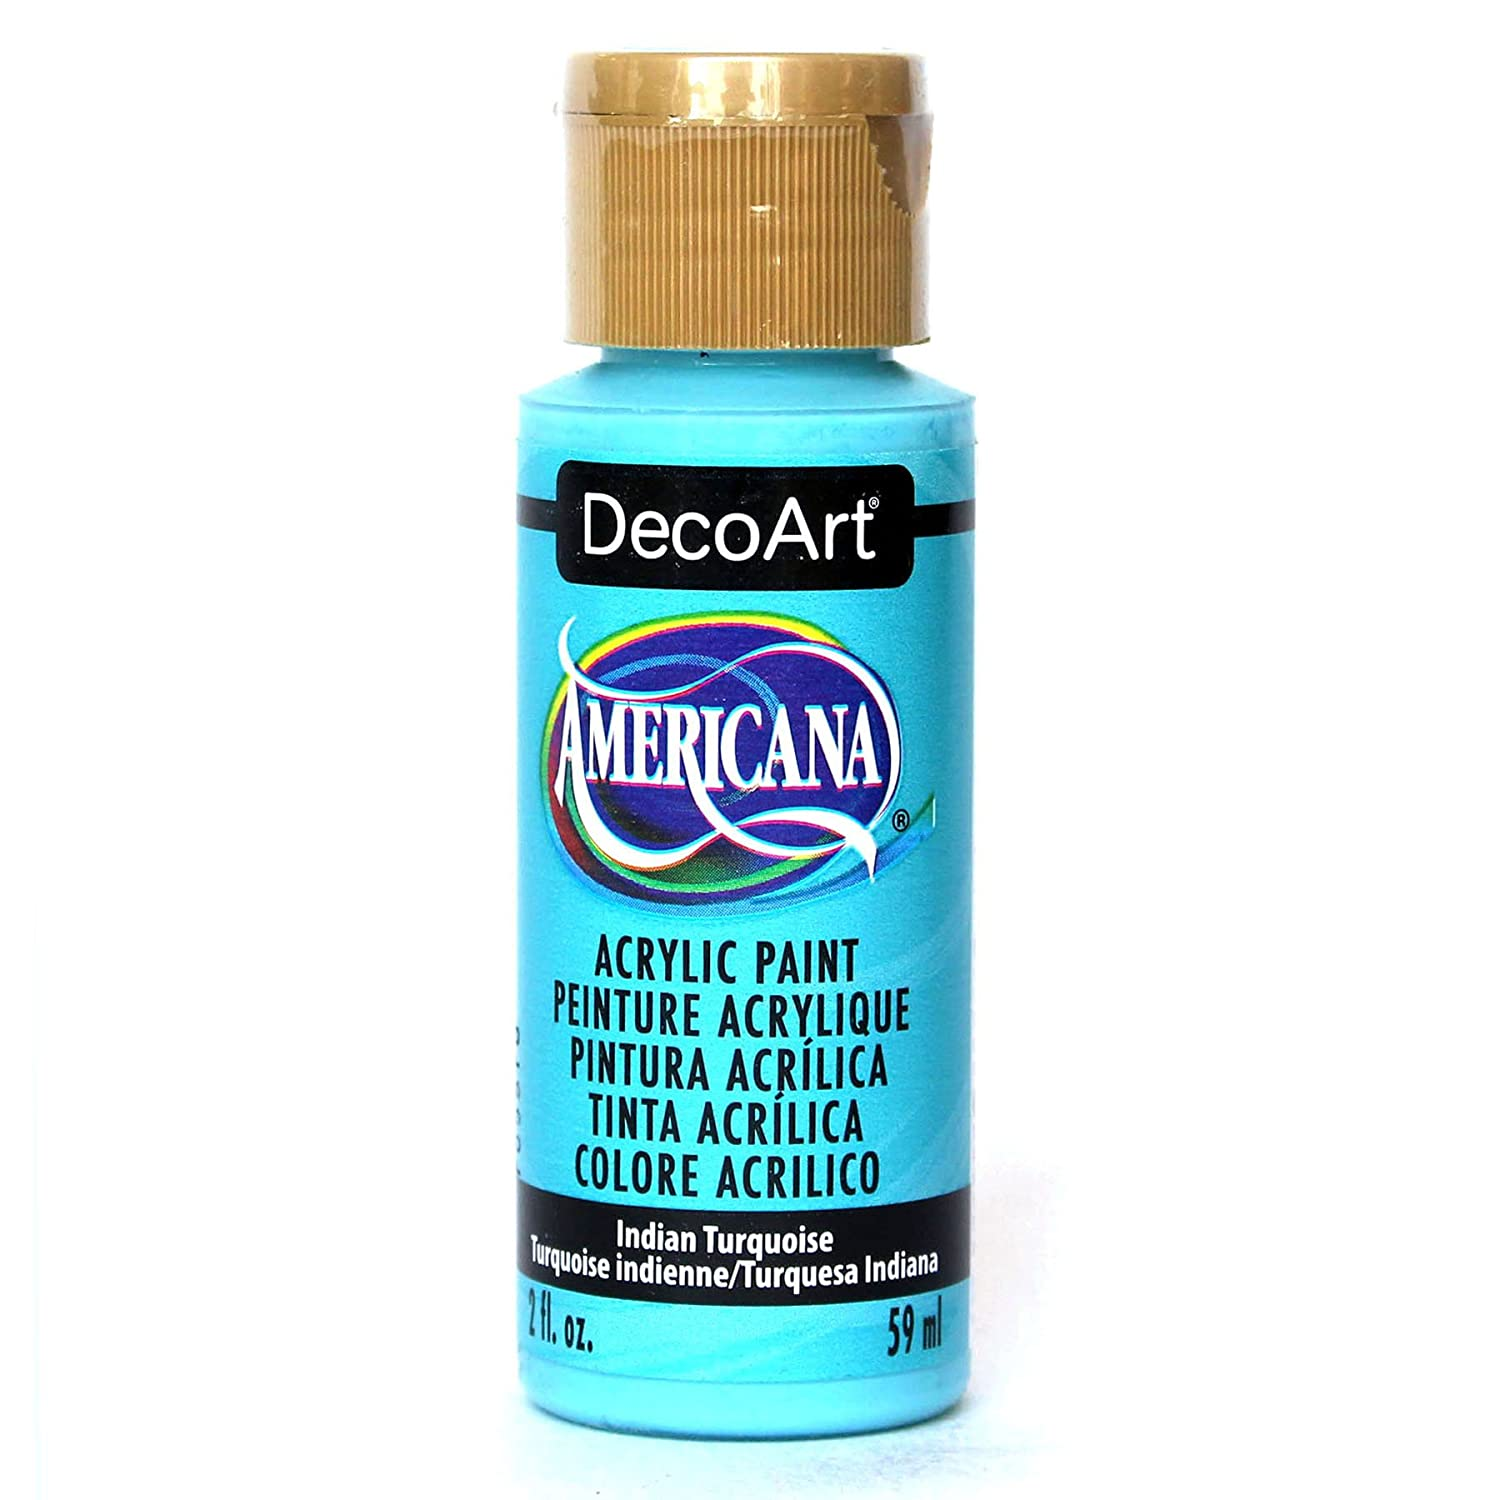 Deco Art Americana Acrylic Multi-Purpose Paint, Indian Turquoise DecoArt DAO87-3